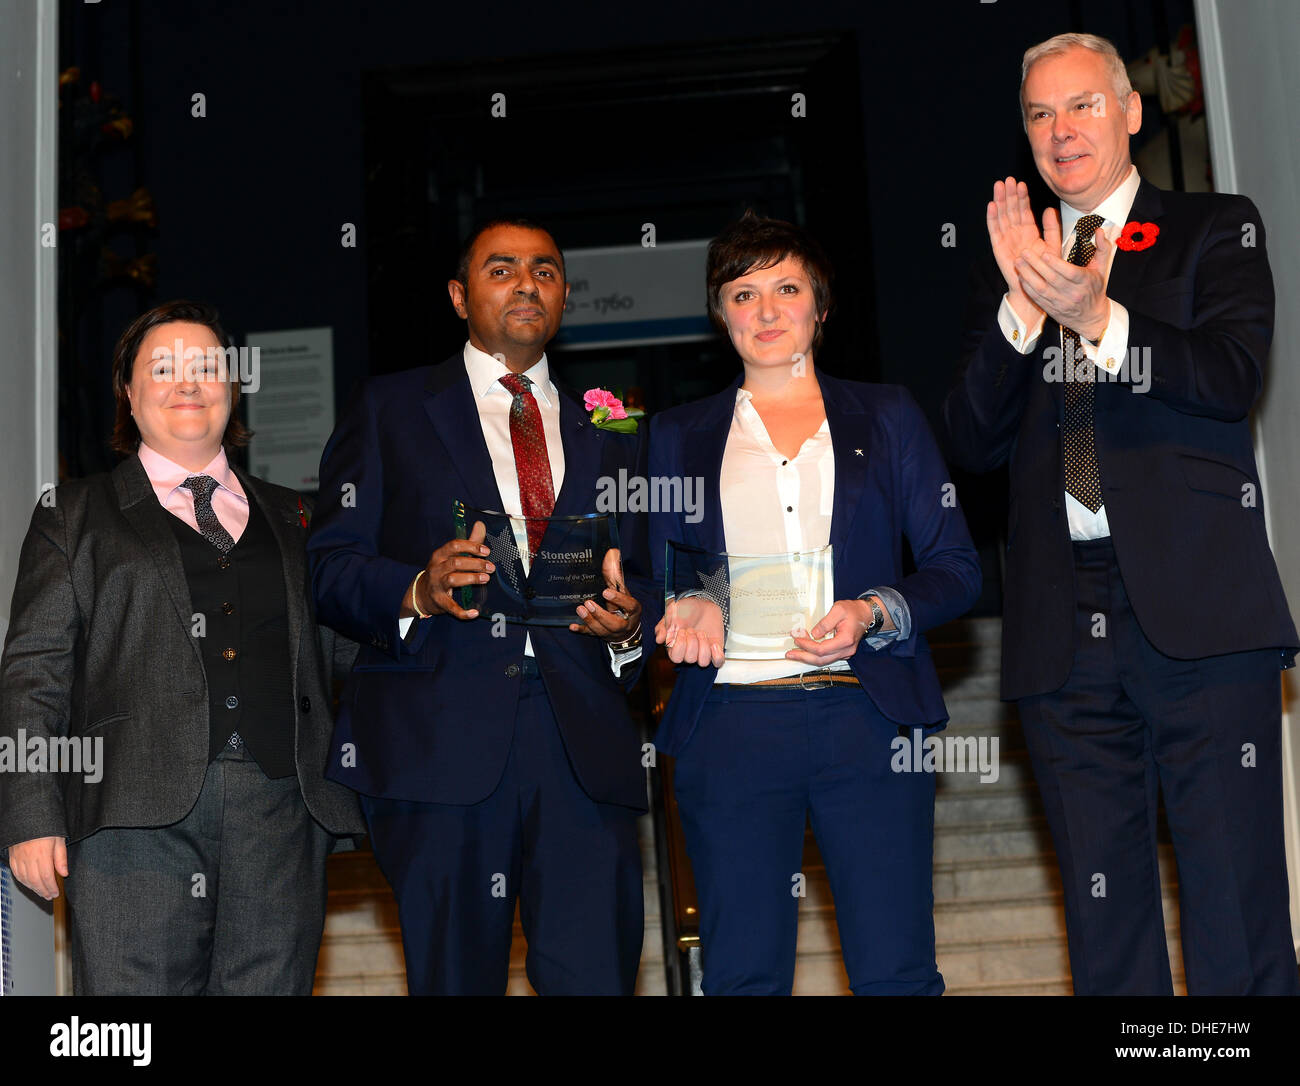 London, UK. 7th Nov 2013.  Hero of the year, Lord Alli and Dawn Airey of the Stonewall Awards 2013 taking place at the Victoria and Albert Museum. Credit:  See Li/Alamy Live News - Stock Image